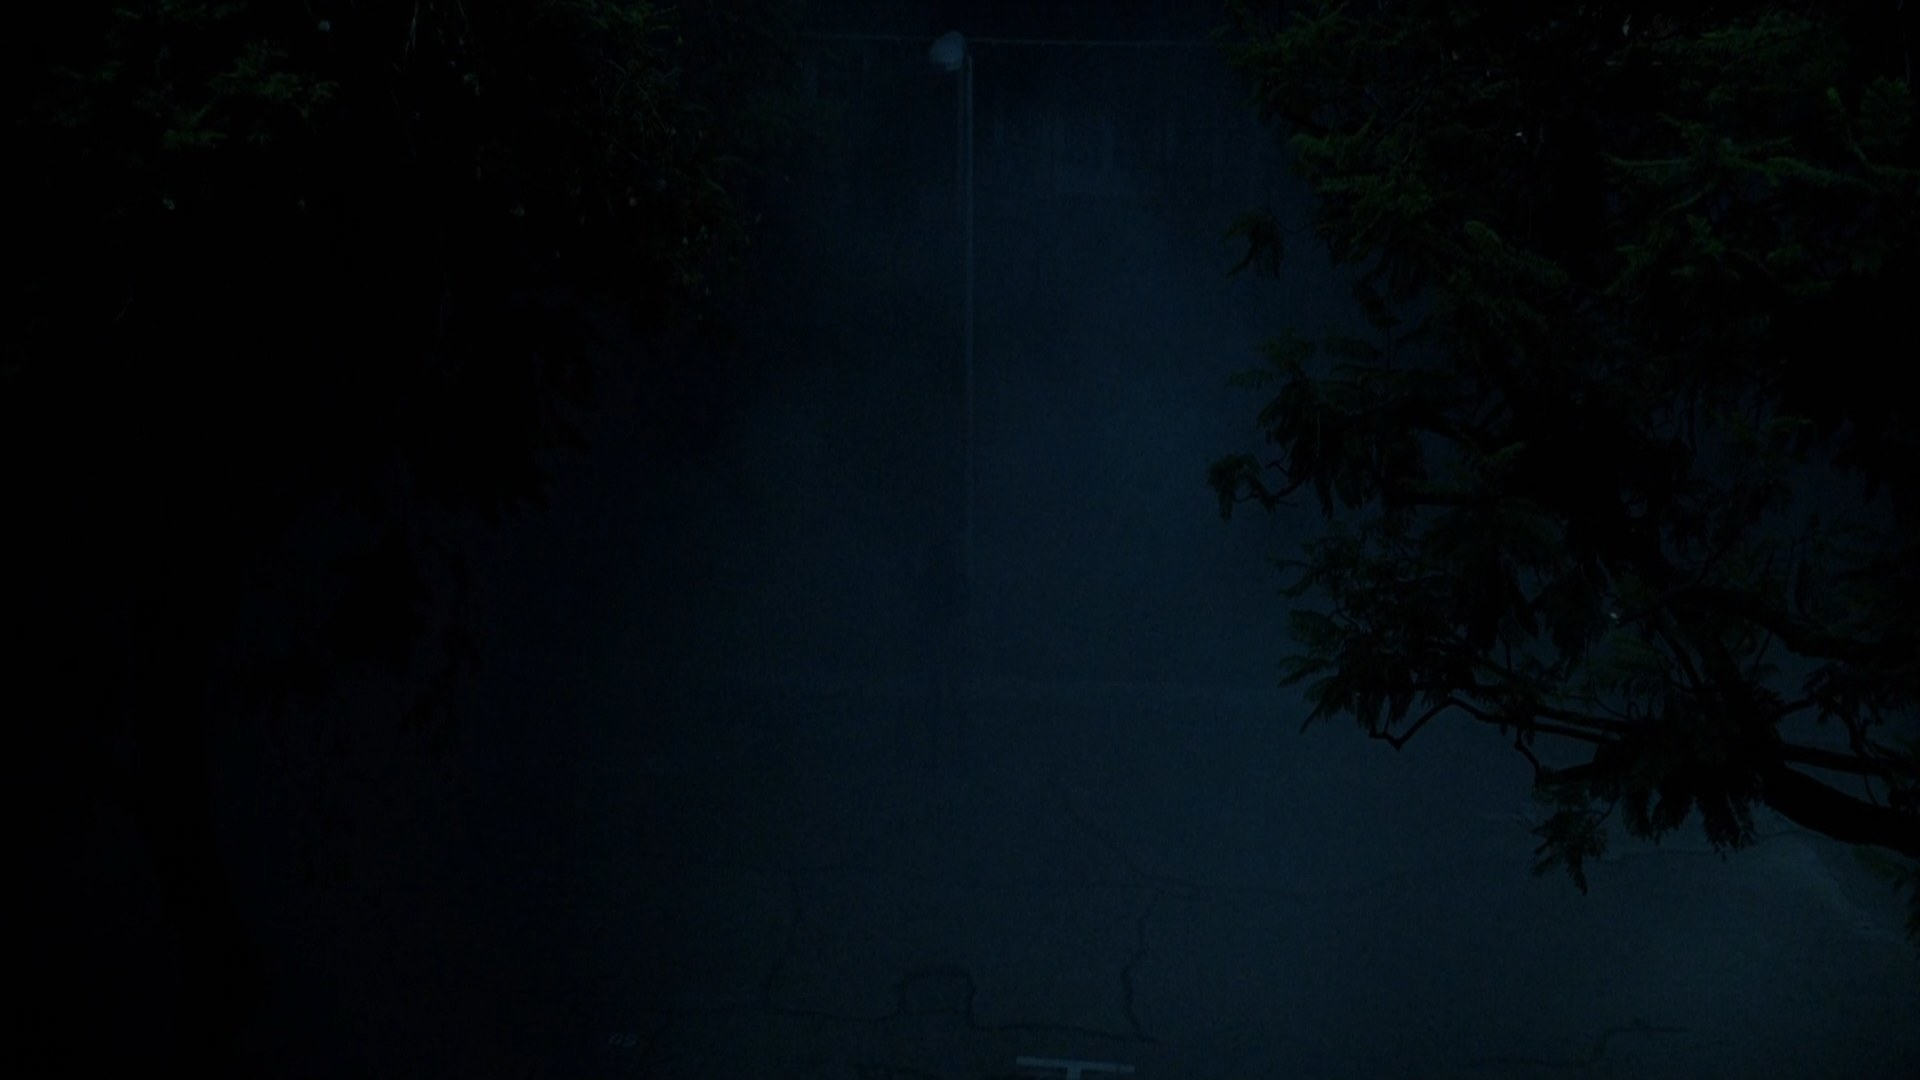 A humanoid figure stands on a dark fogy street.